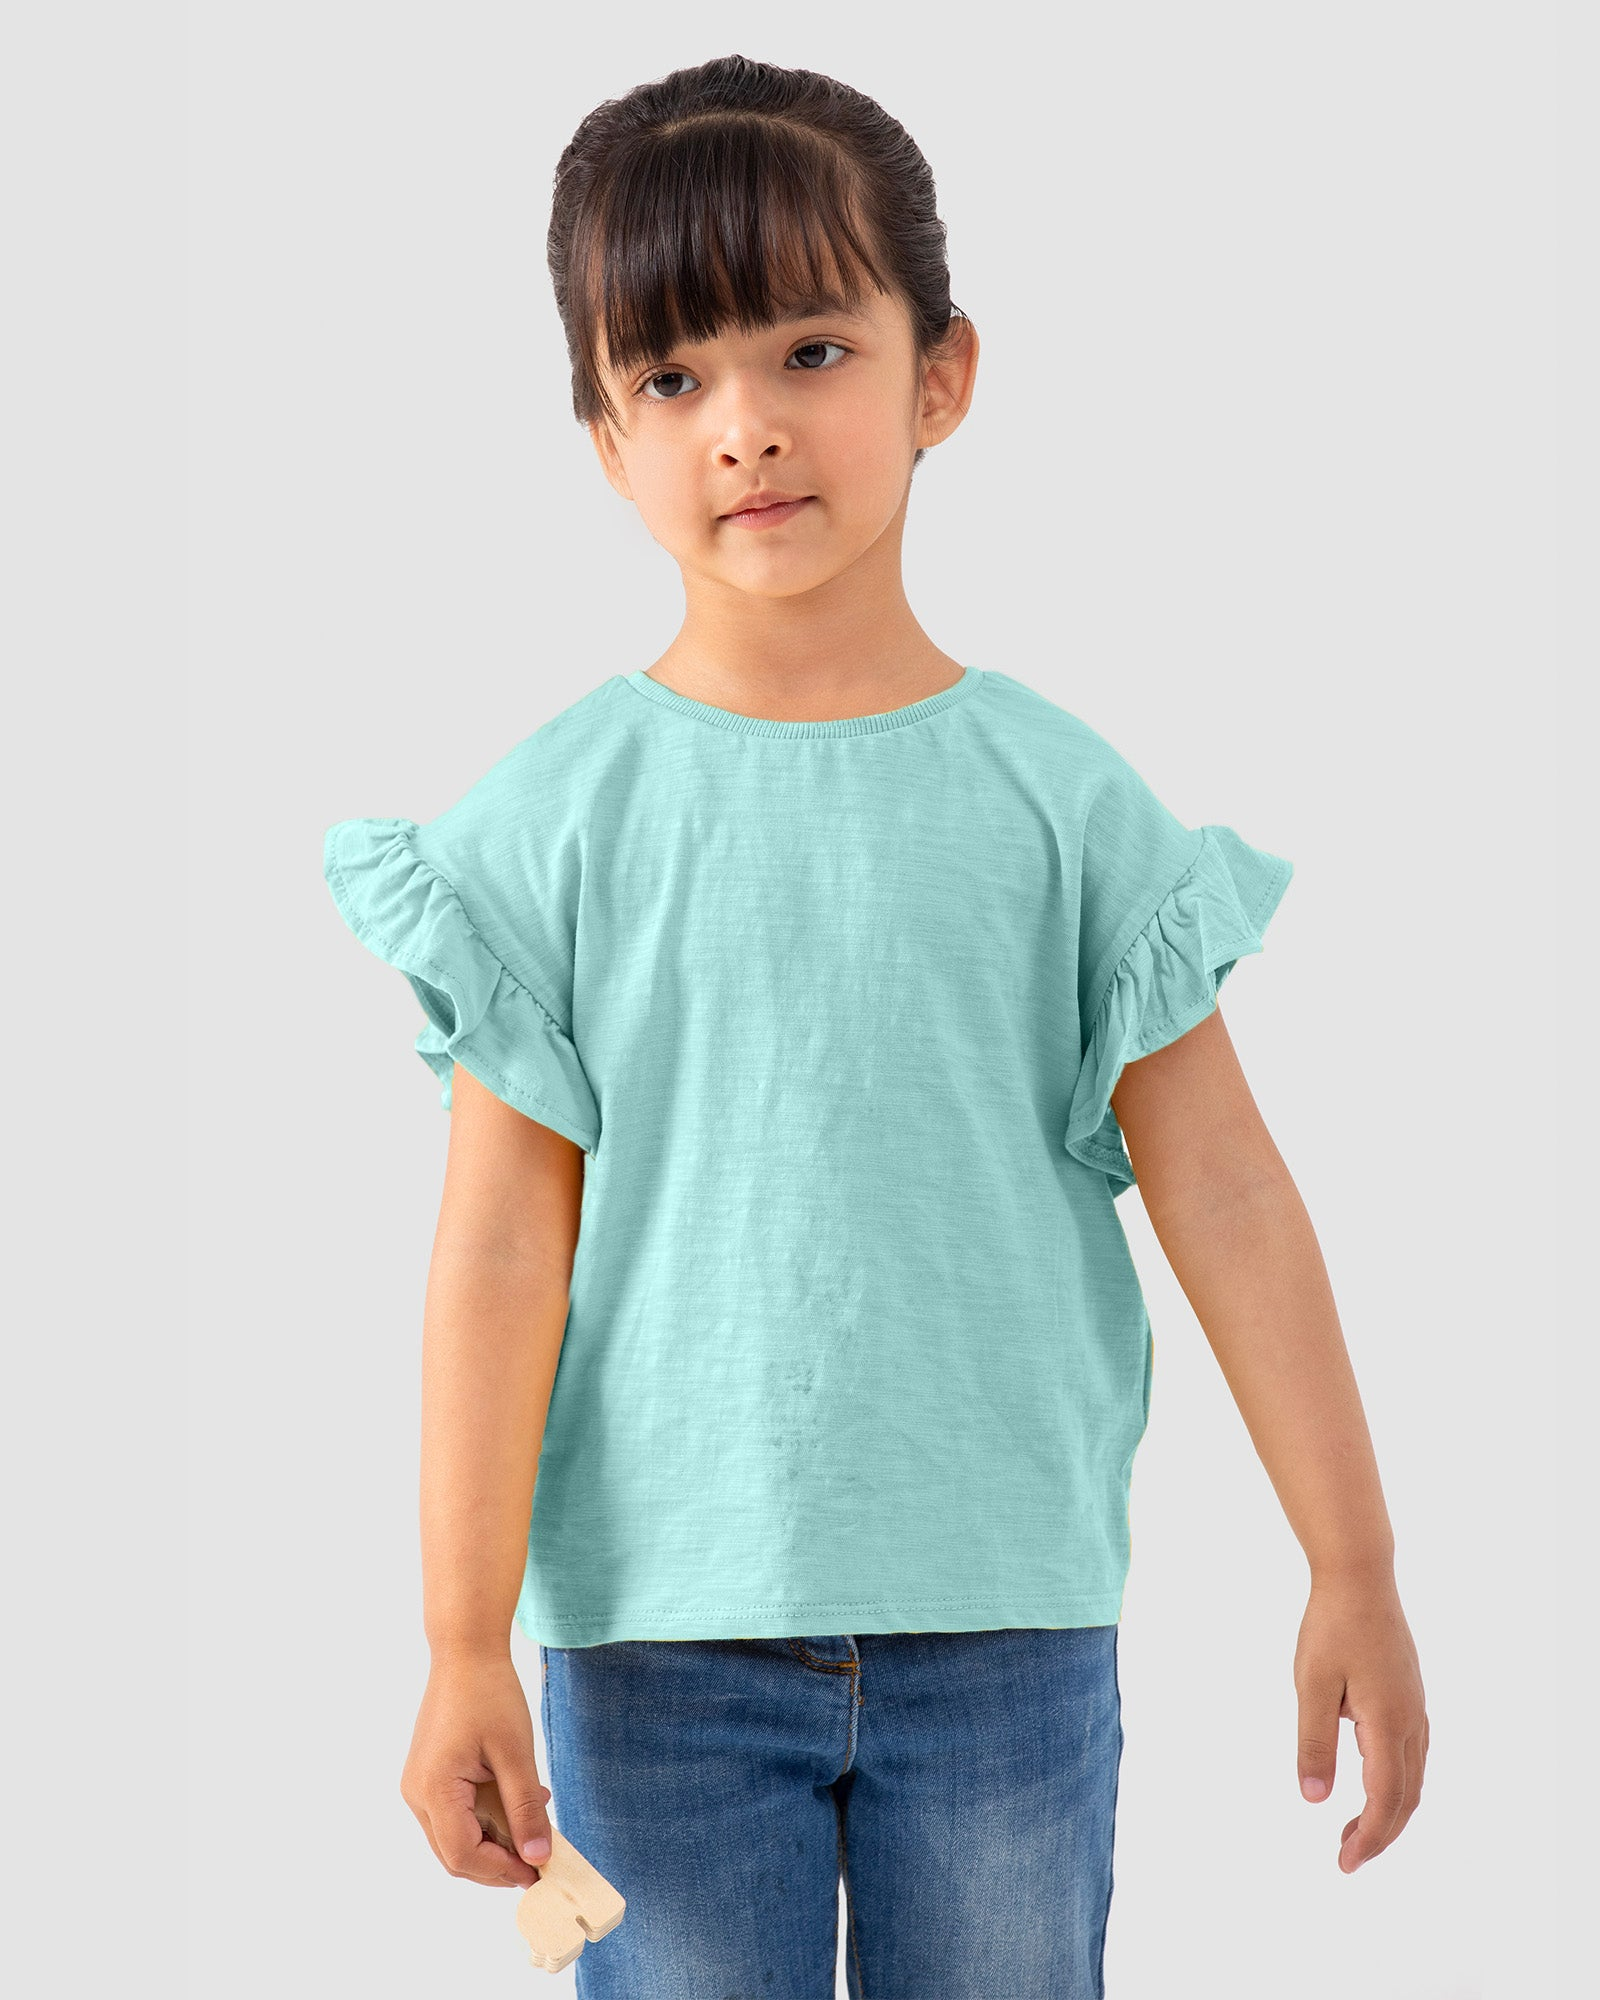 Tee with Ruffle Sleeves